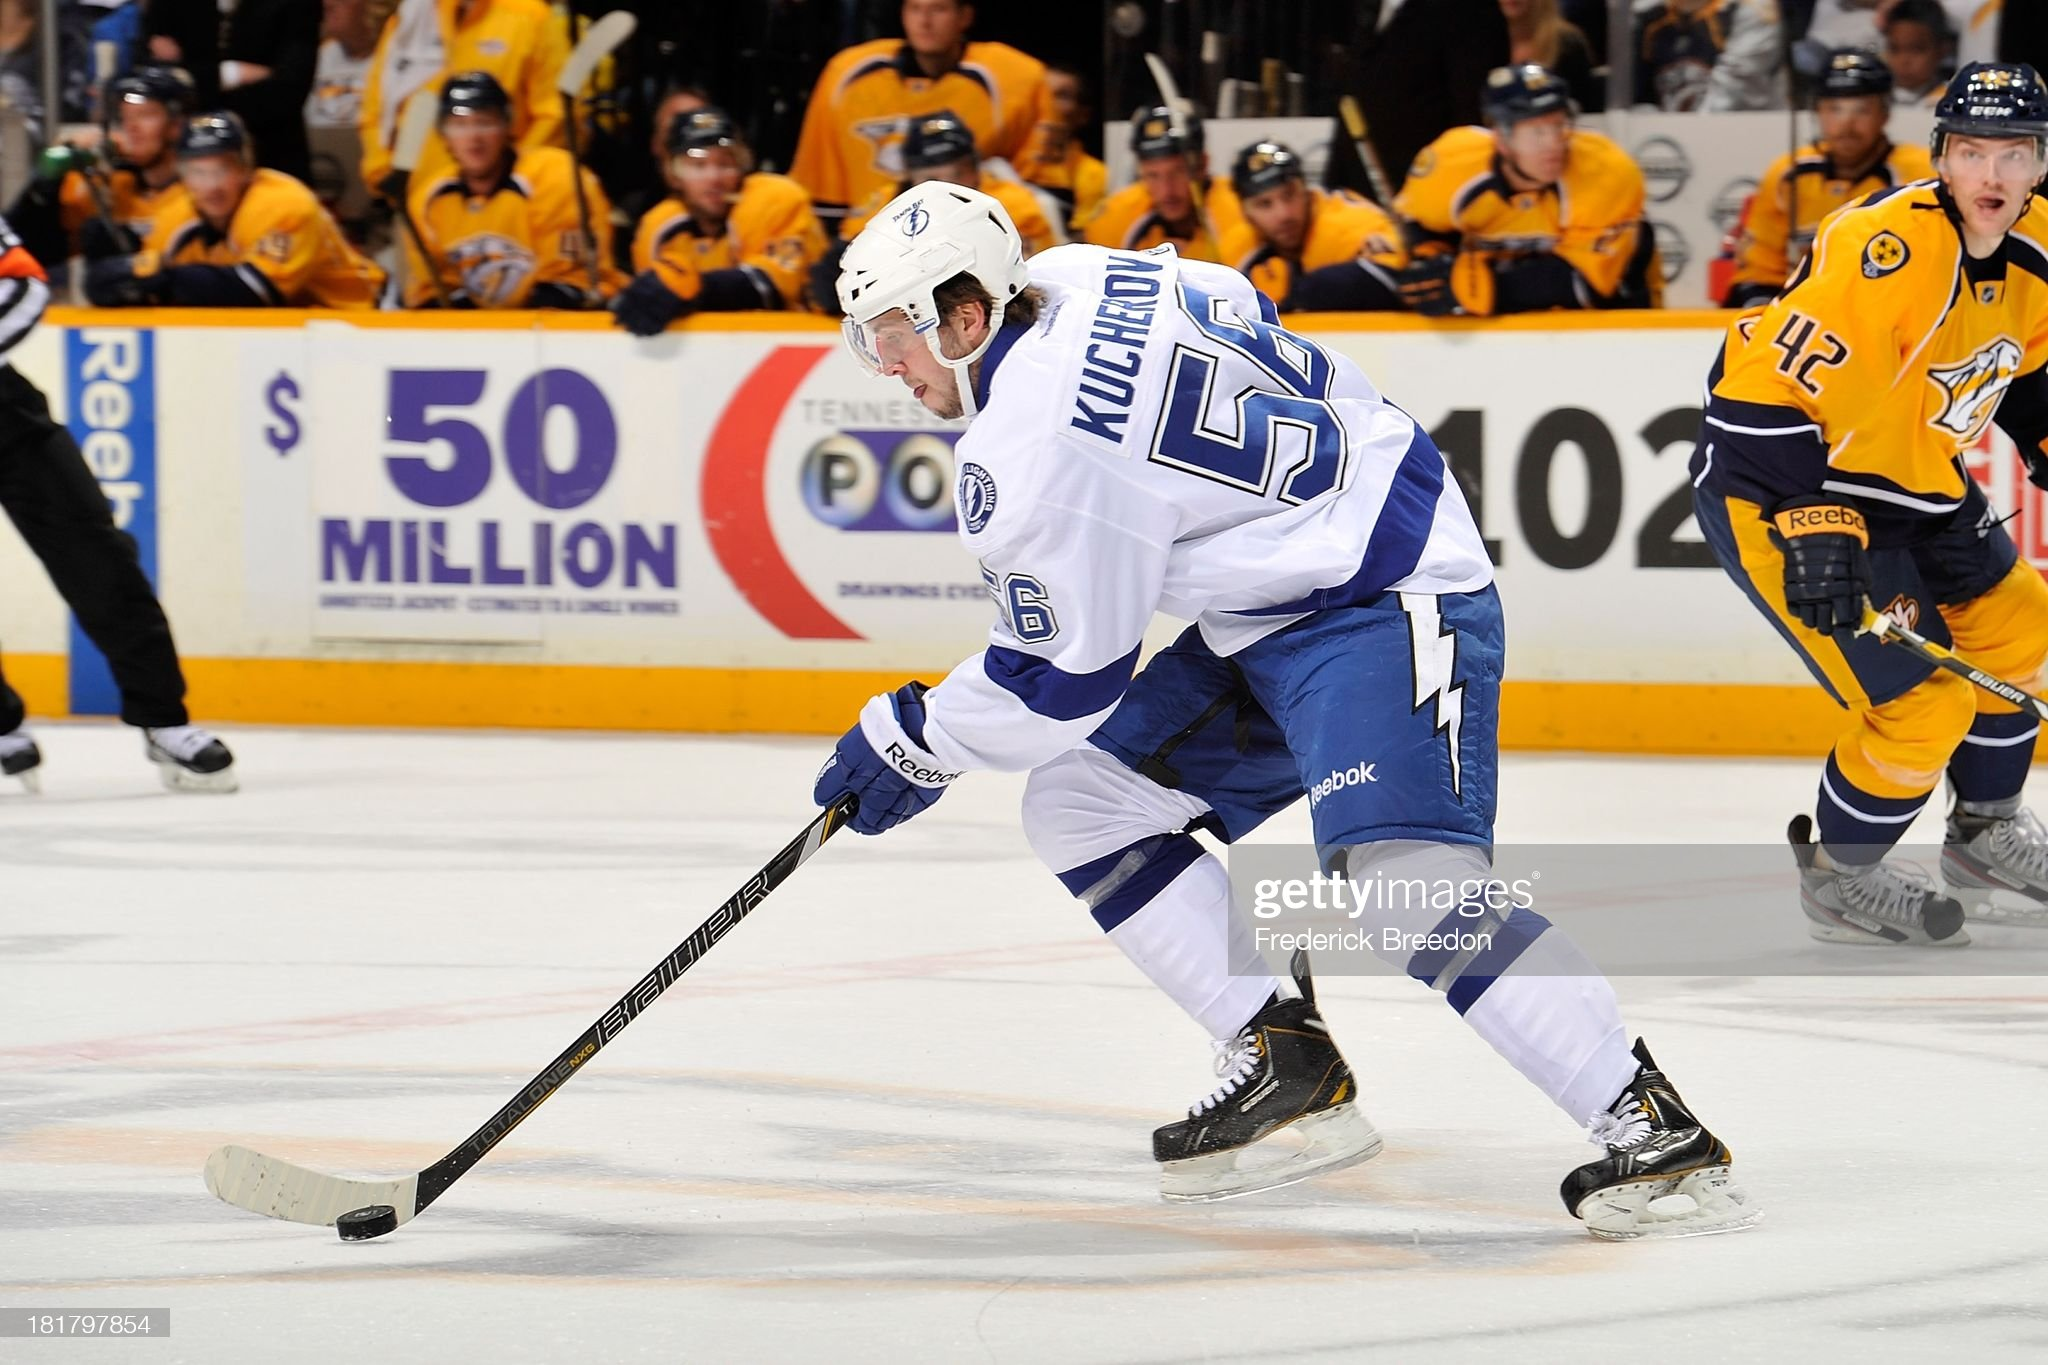 nikita-kucherov-of-the-tampa-bay-lightni